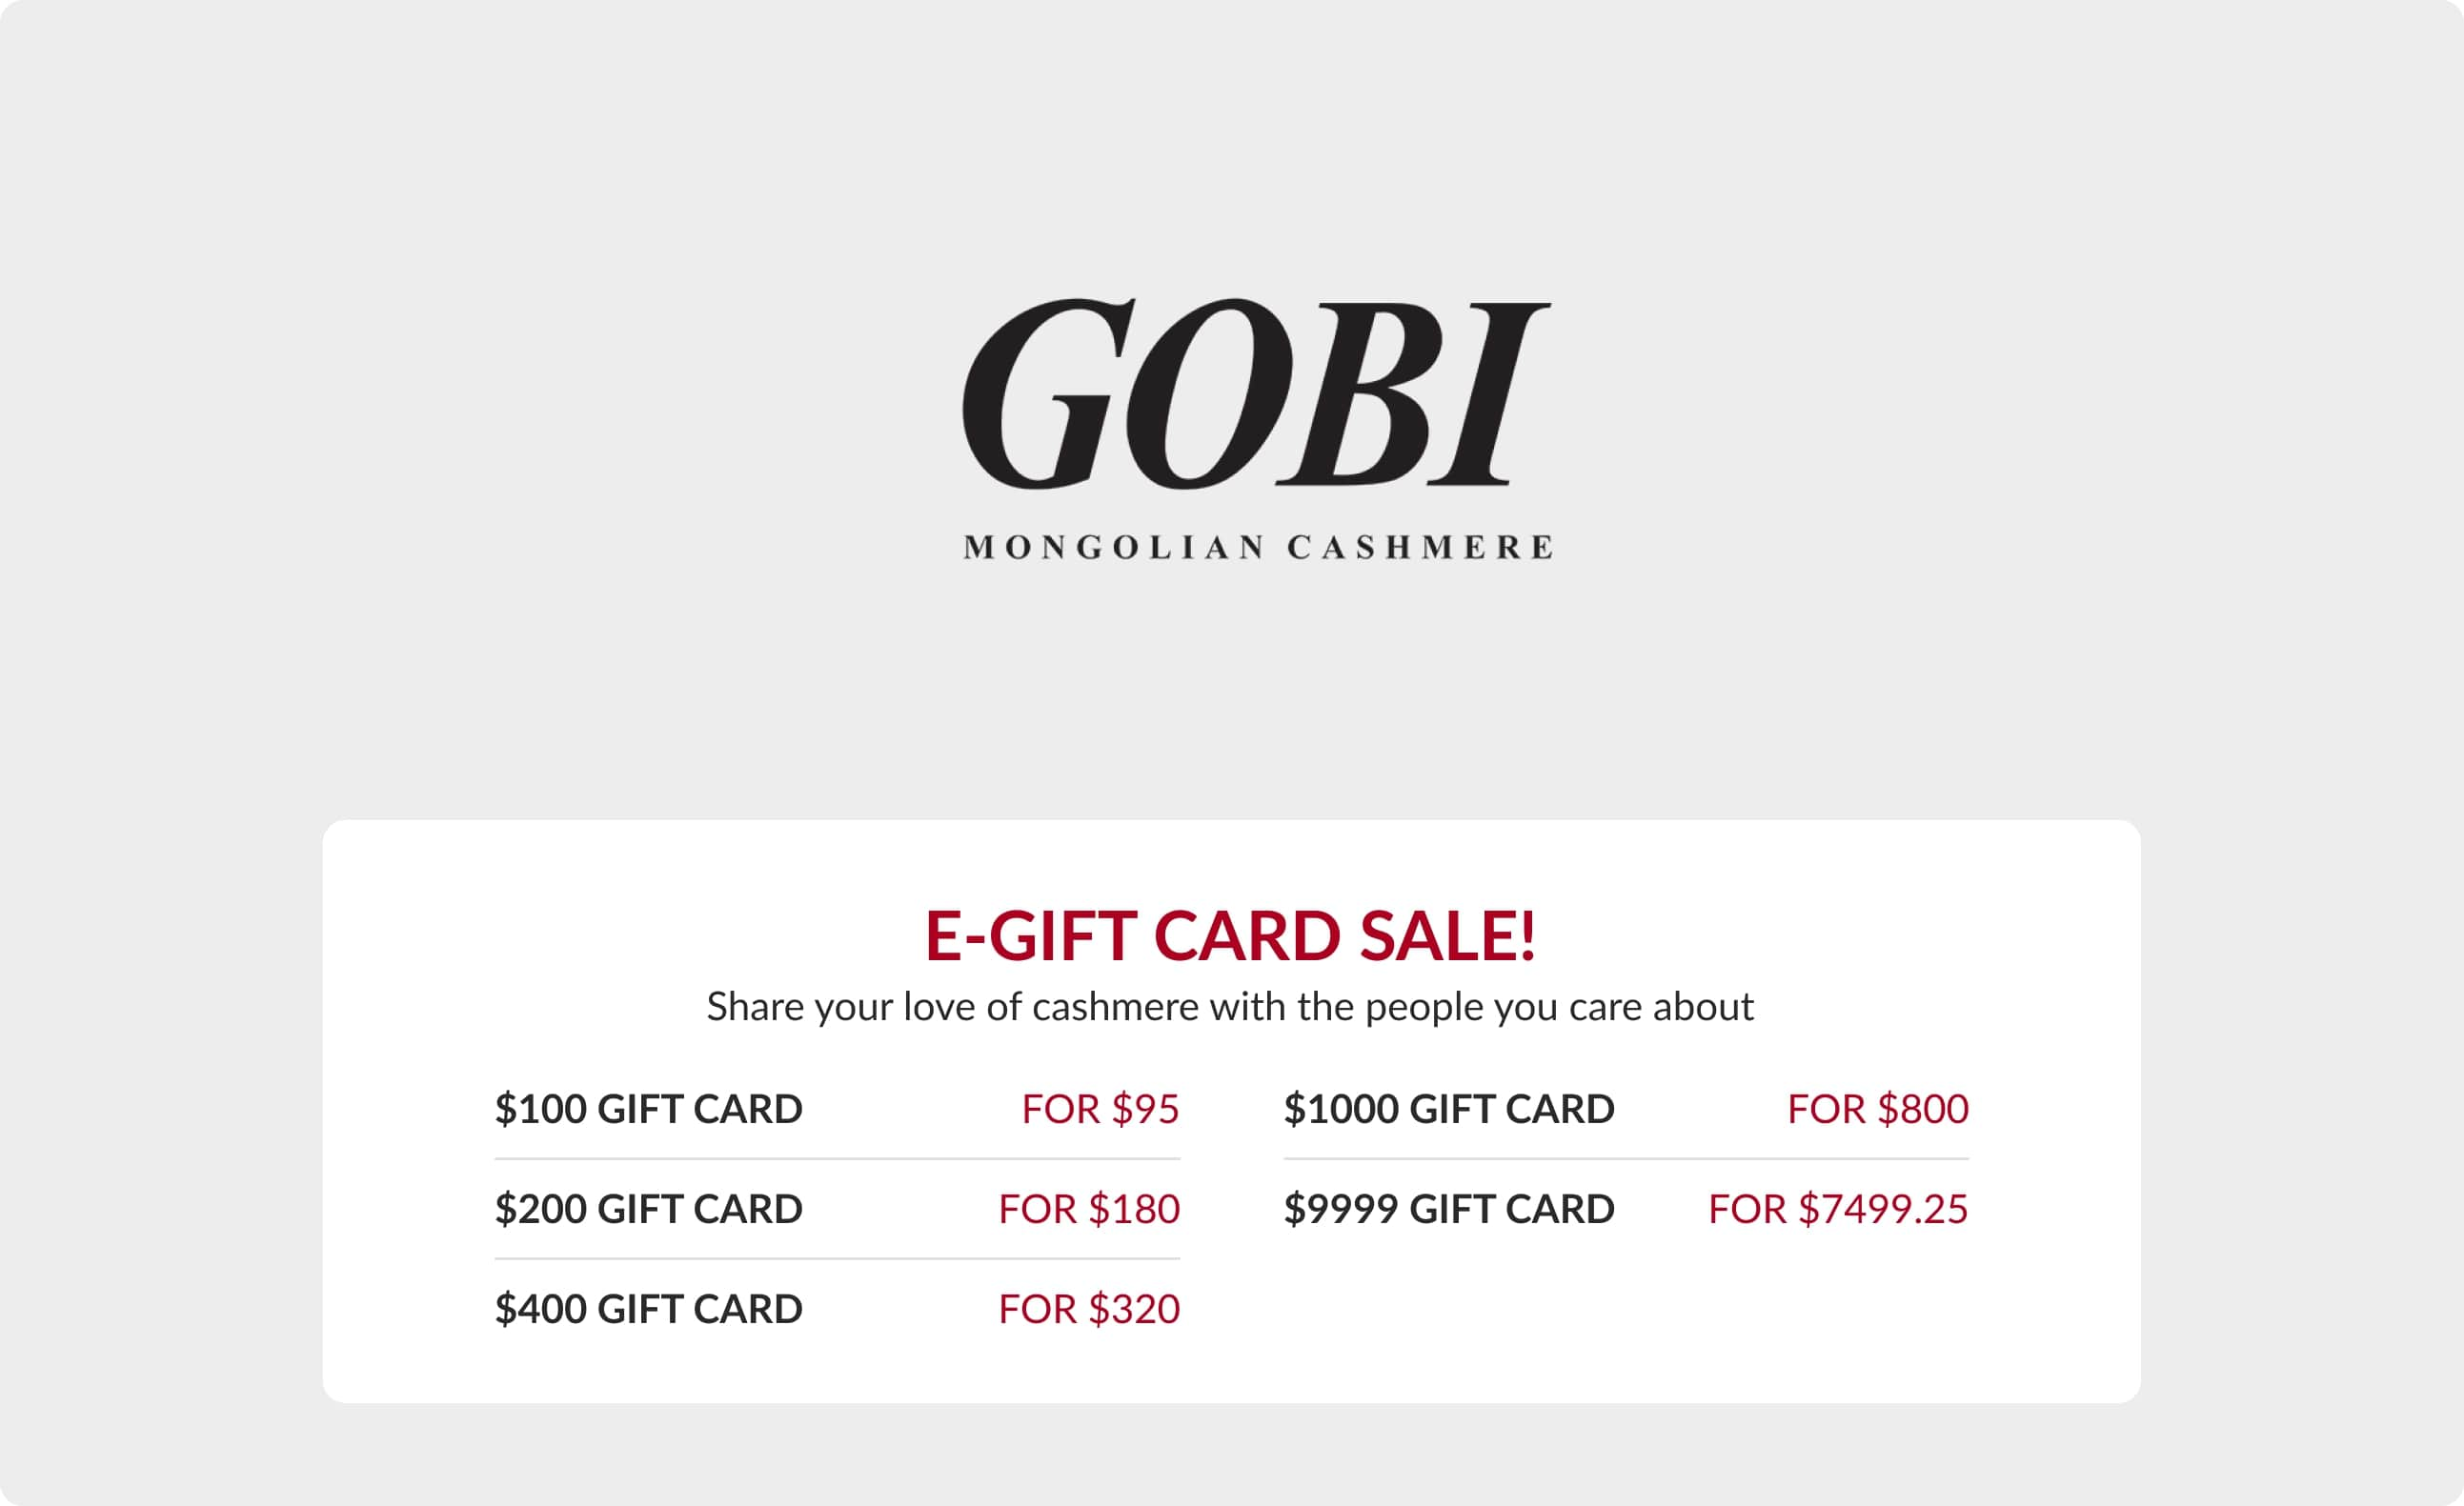 Get $1000 gift card for only $800